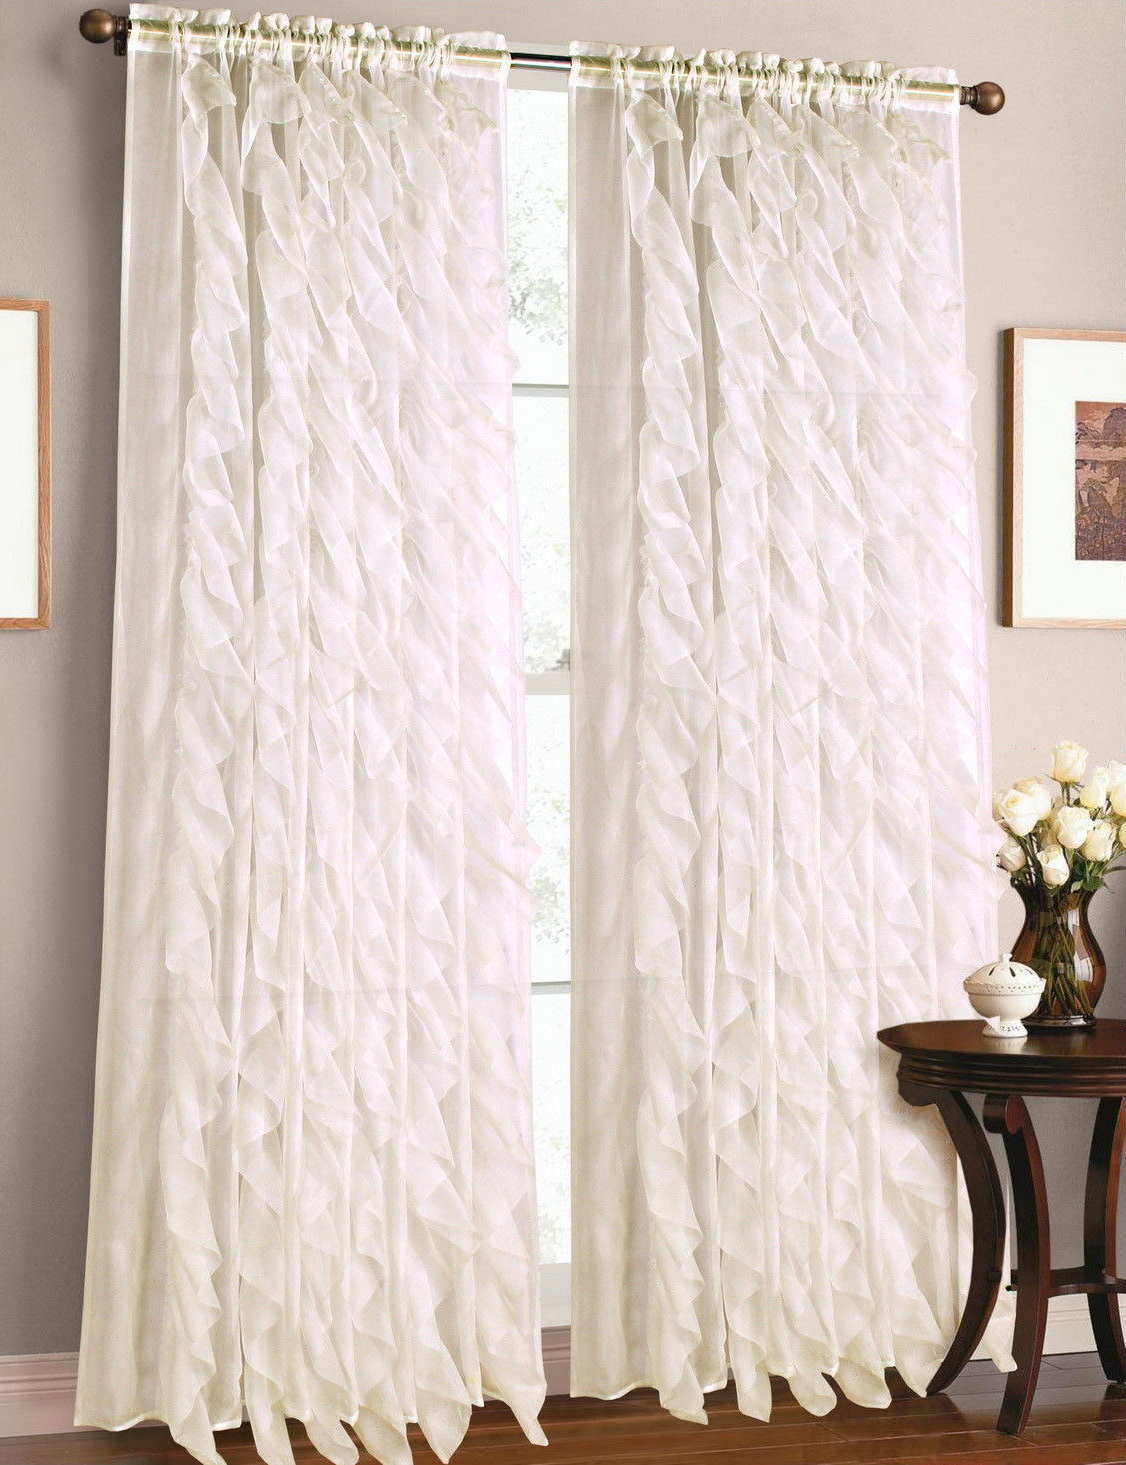 "Elegant Crushed Voile Ruffle Window Curtain Pieces Intended For Famous 1Pc Beige Cascade Elegant Crushed Voile Sheer Window Curtain Panel 55"" X 84"" (Gallery 11 of 20)"